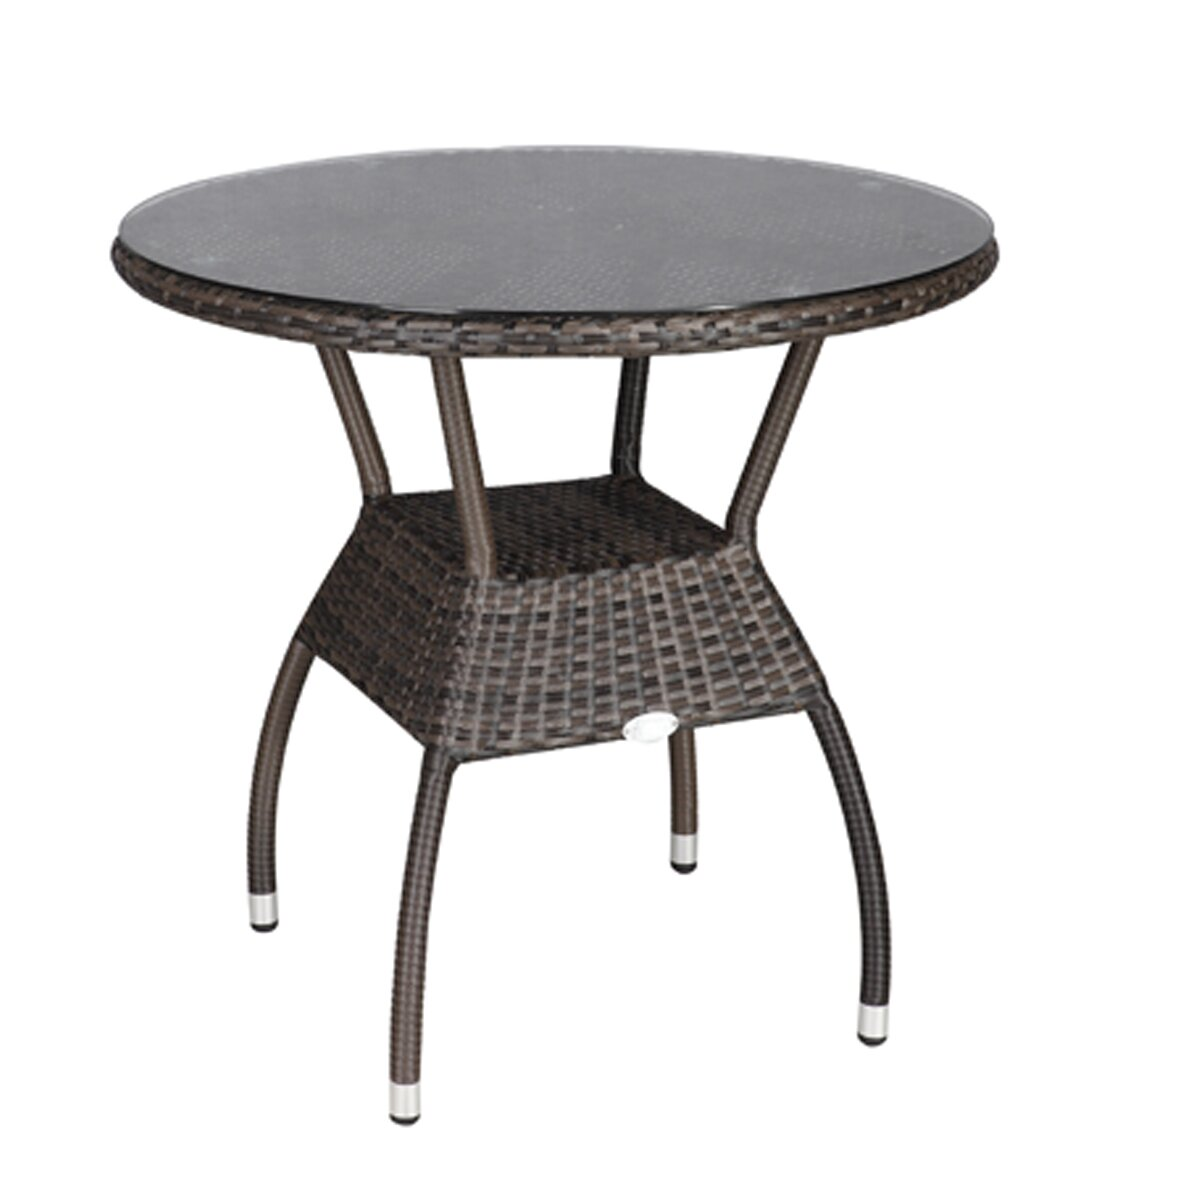 Rattan Outdoor Furniture Brighton Dining Table